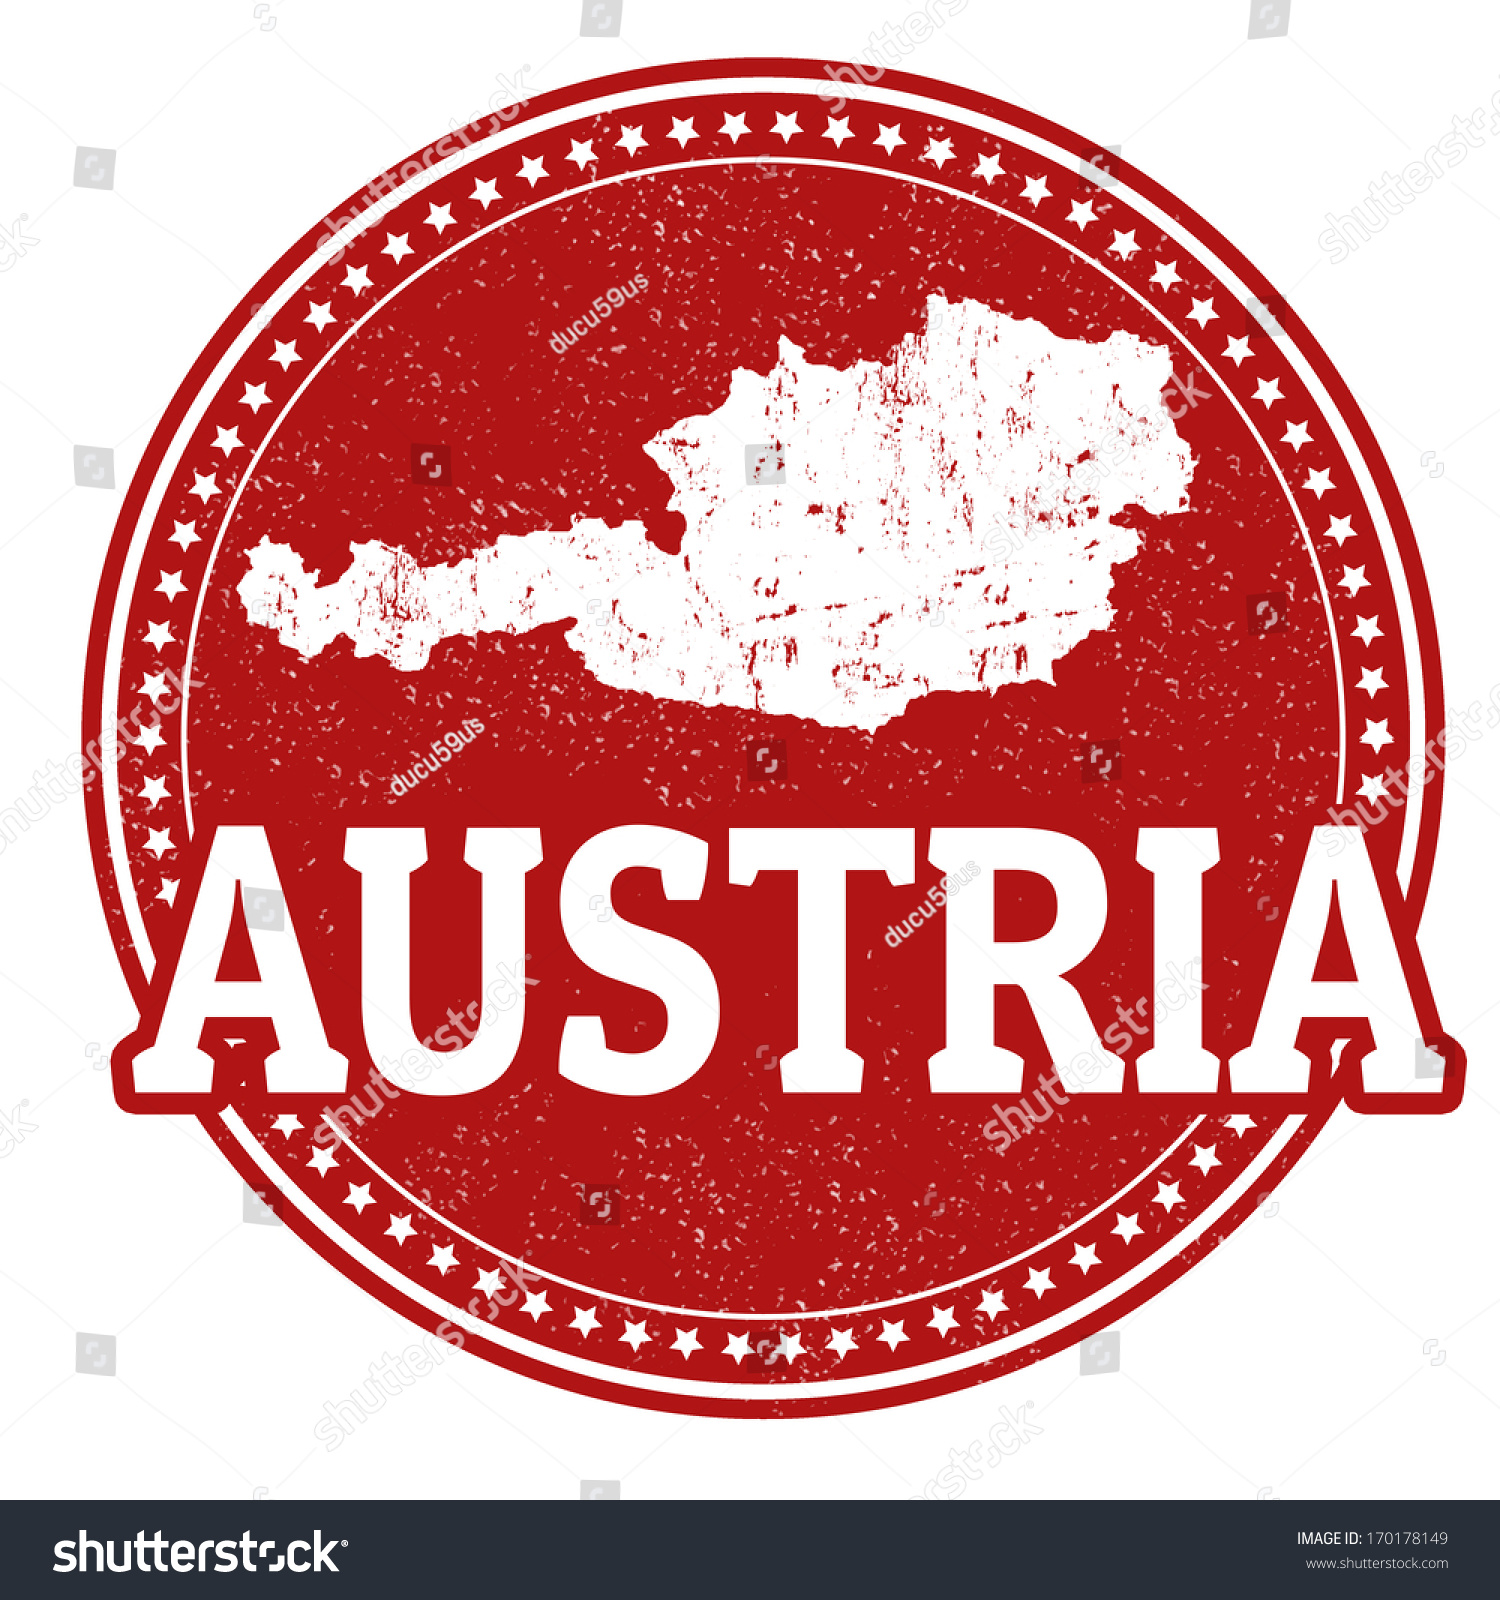 Vintage Stamp With World Austria Written Inside And Map Of Vector Illustration